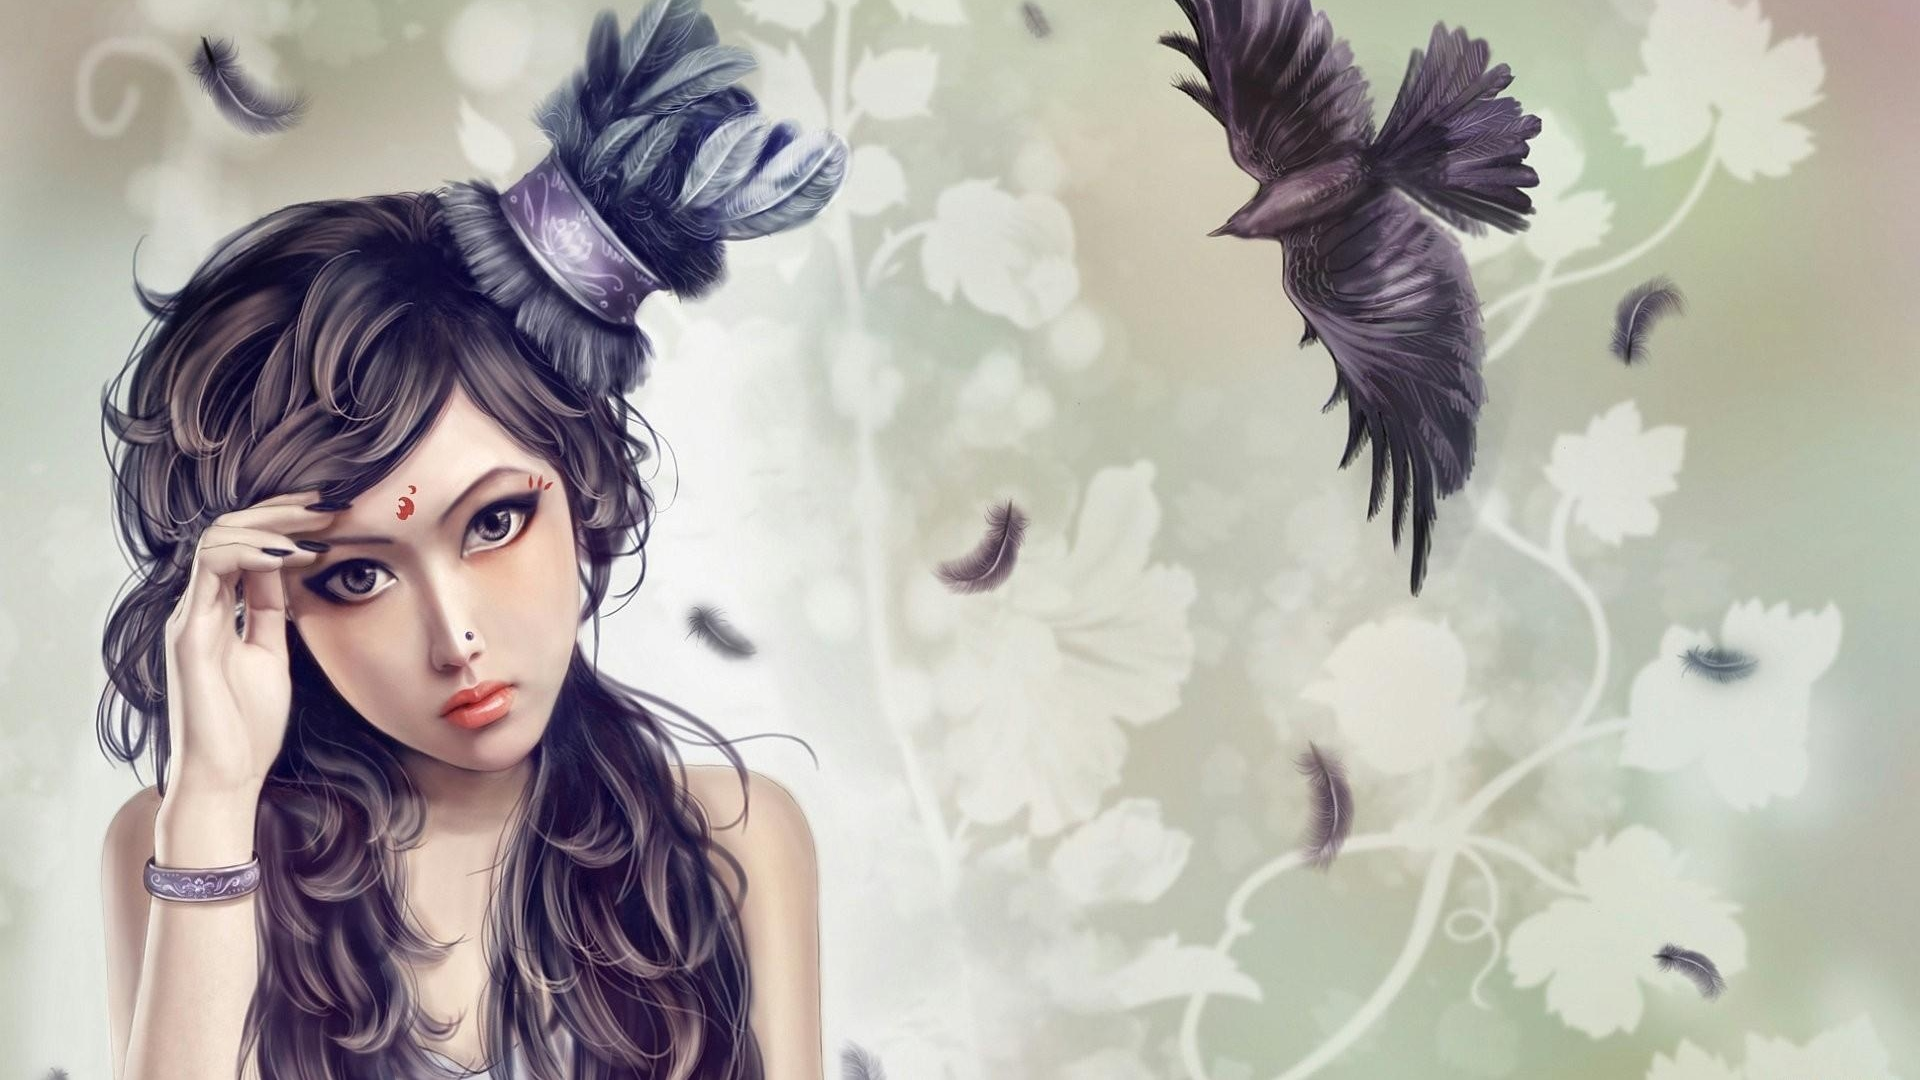 girl-hat-bird-crow-flying-feathers-1920x1080